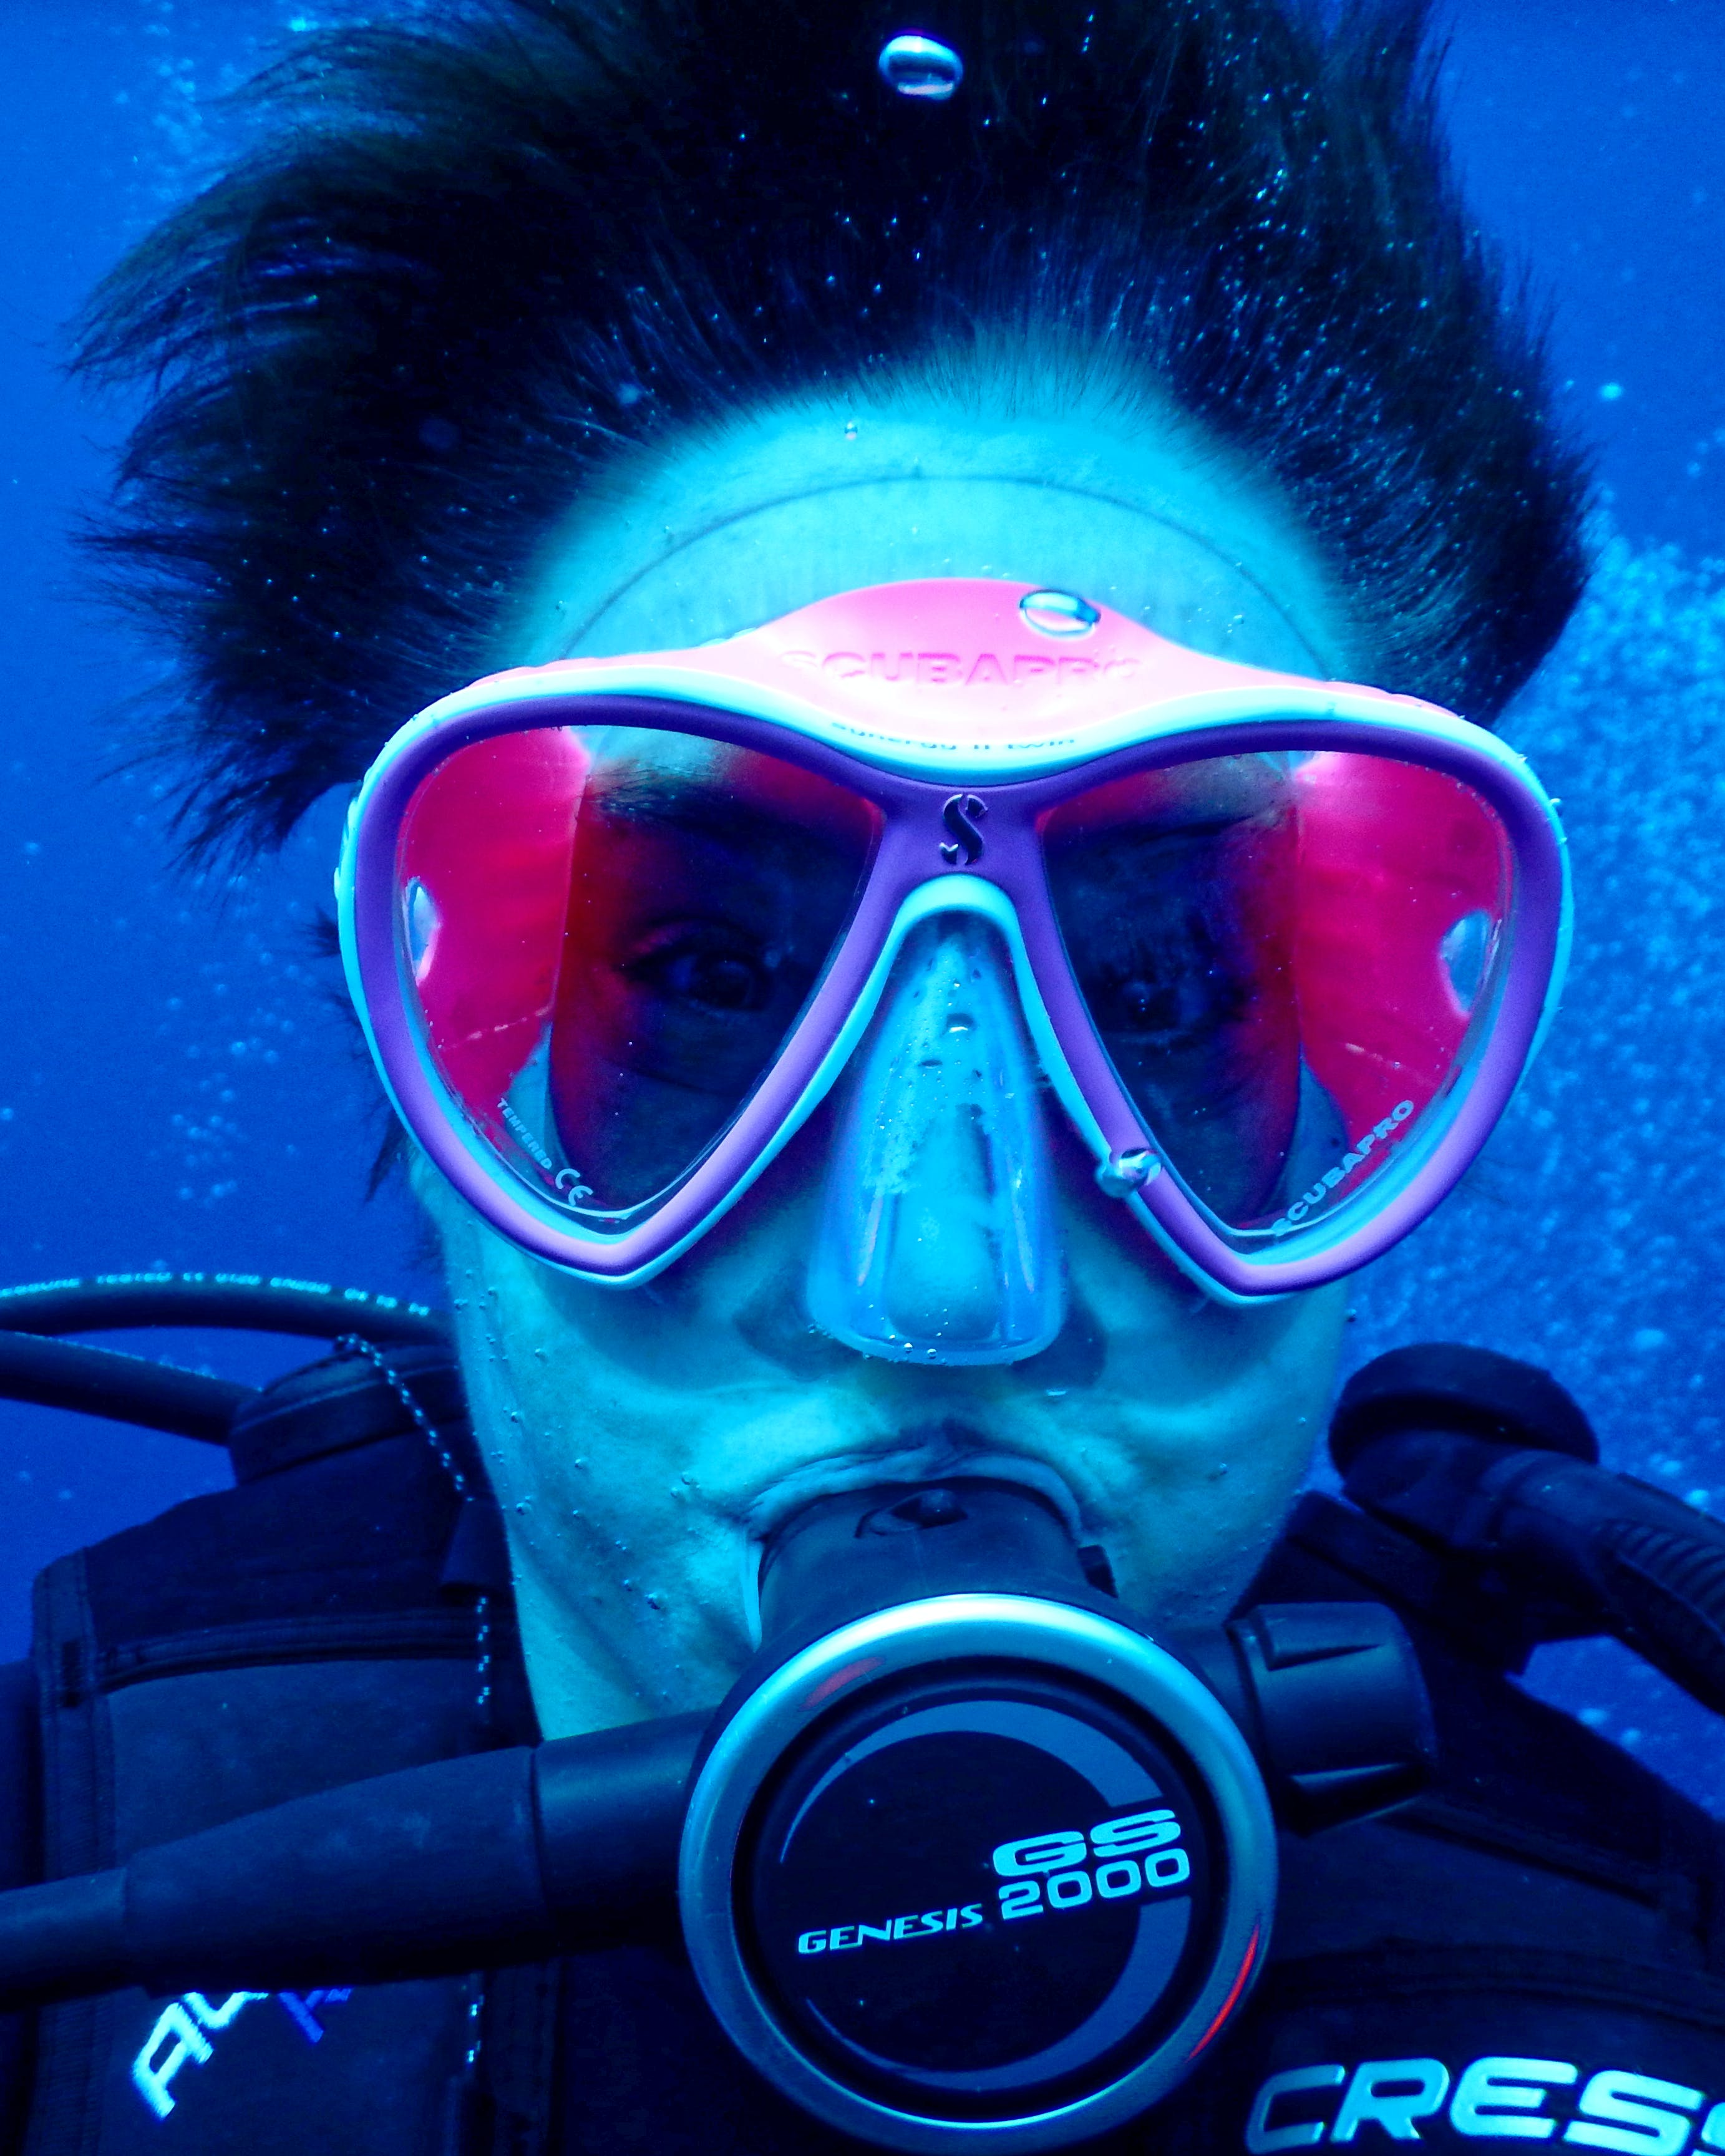 Person Wearing Goggles Underwater